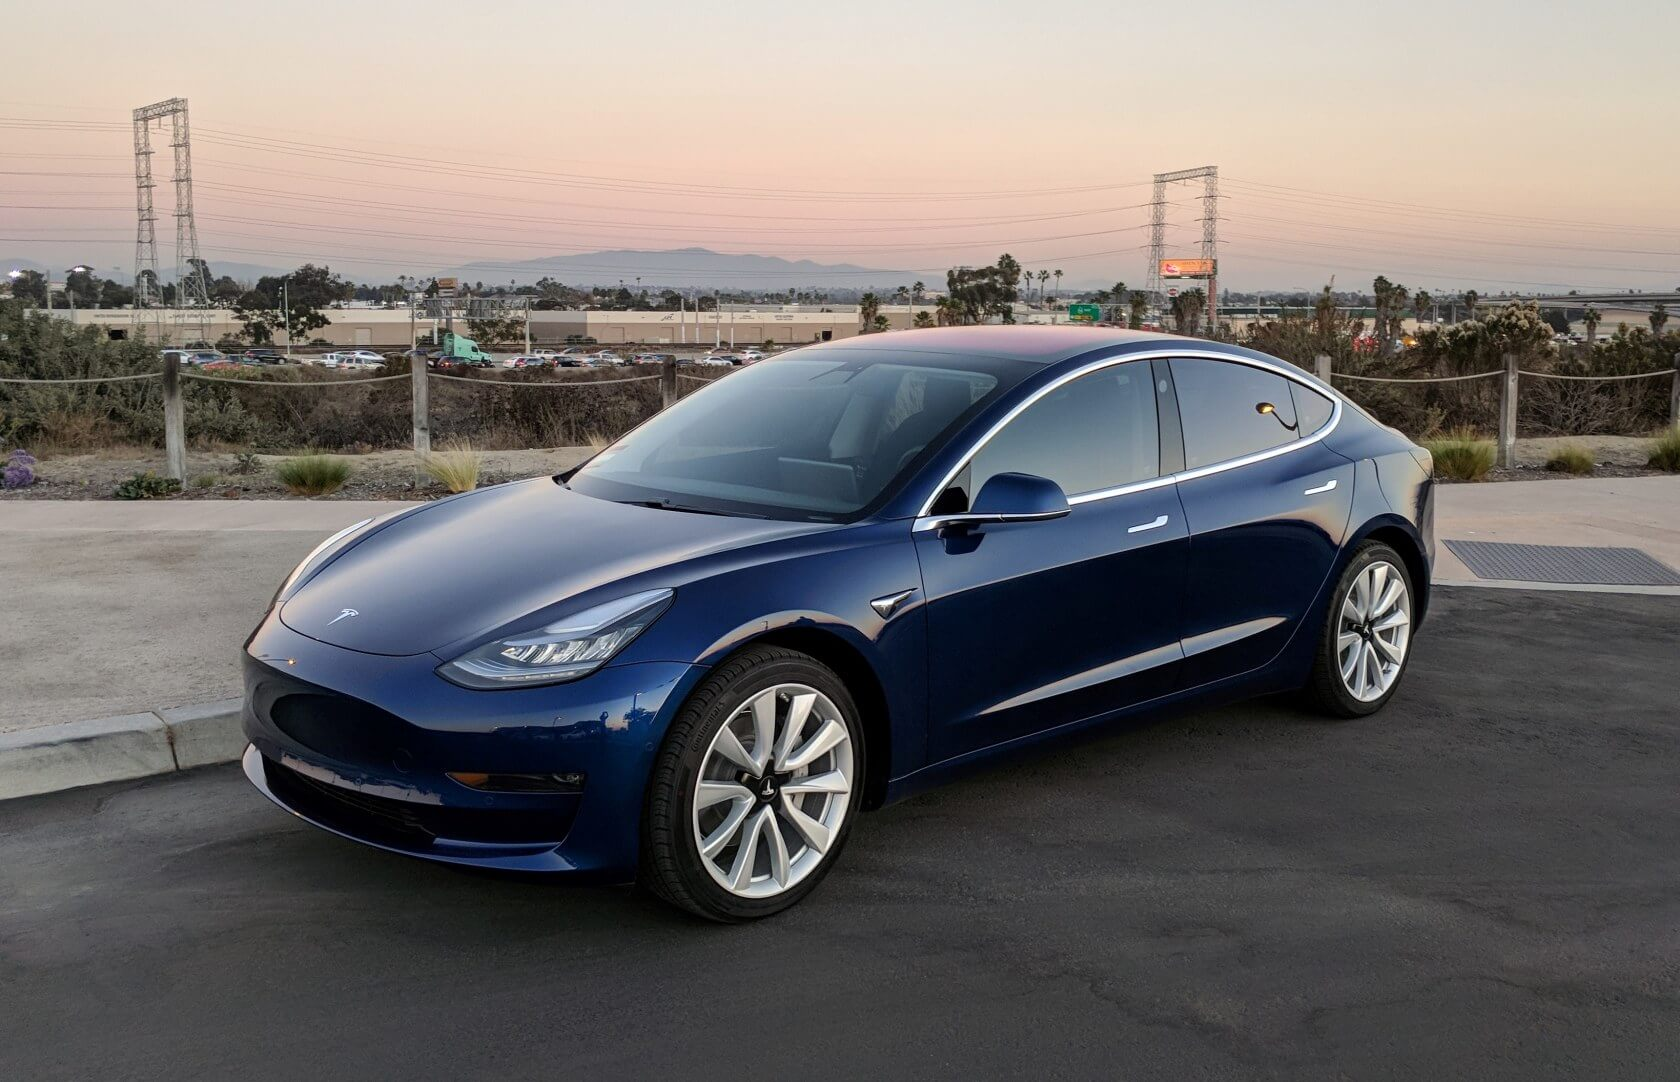 Consumer Reports retracts Tesla Model 3 recommendation due to 'reliability issues'